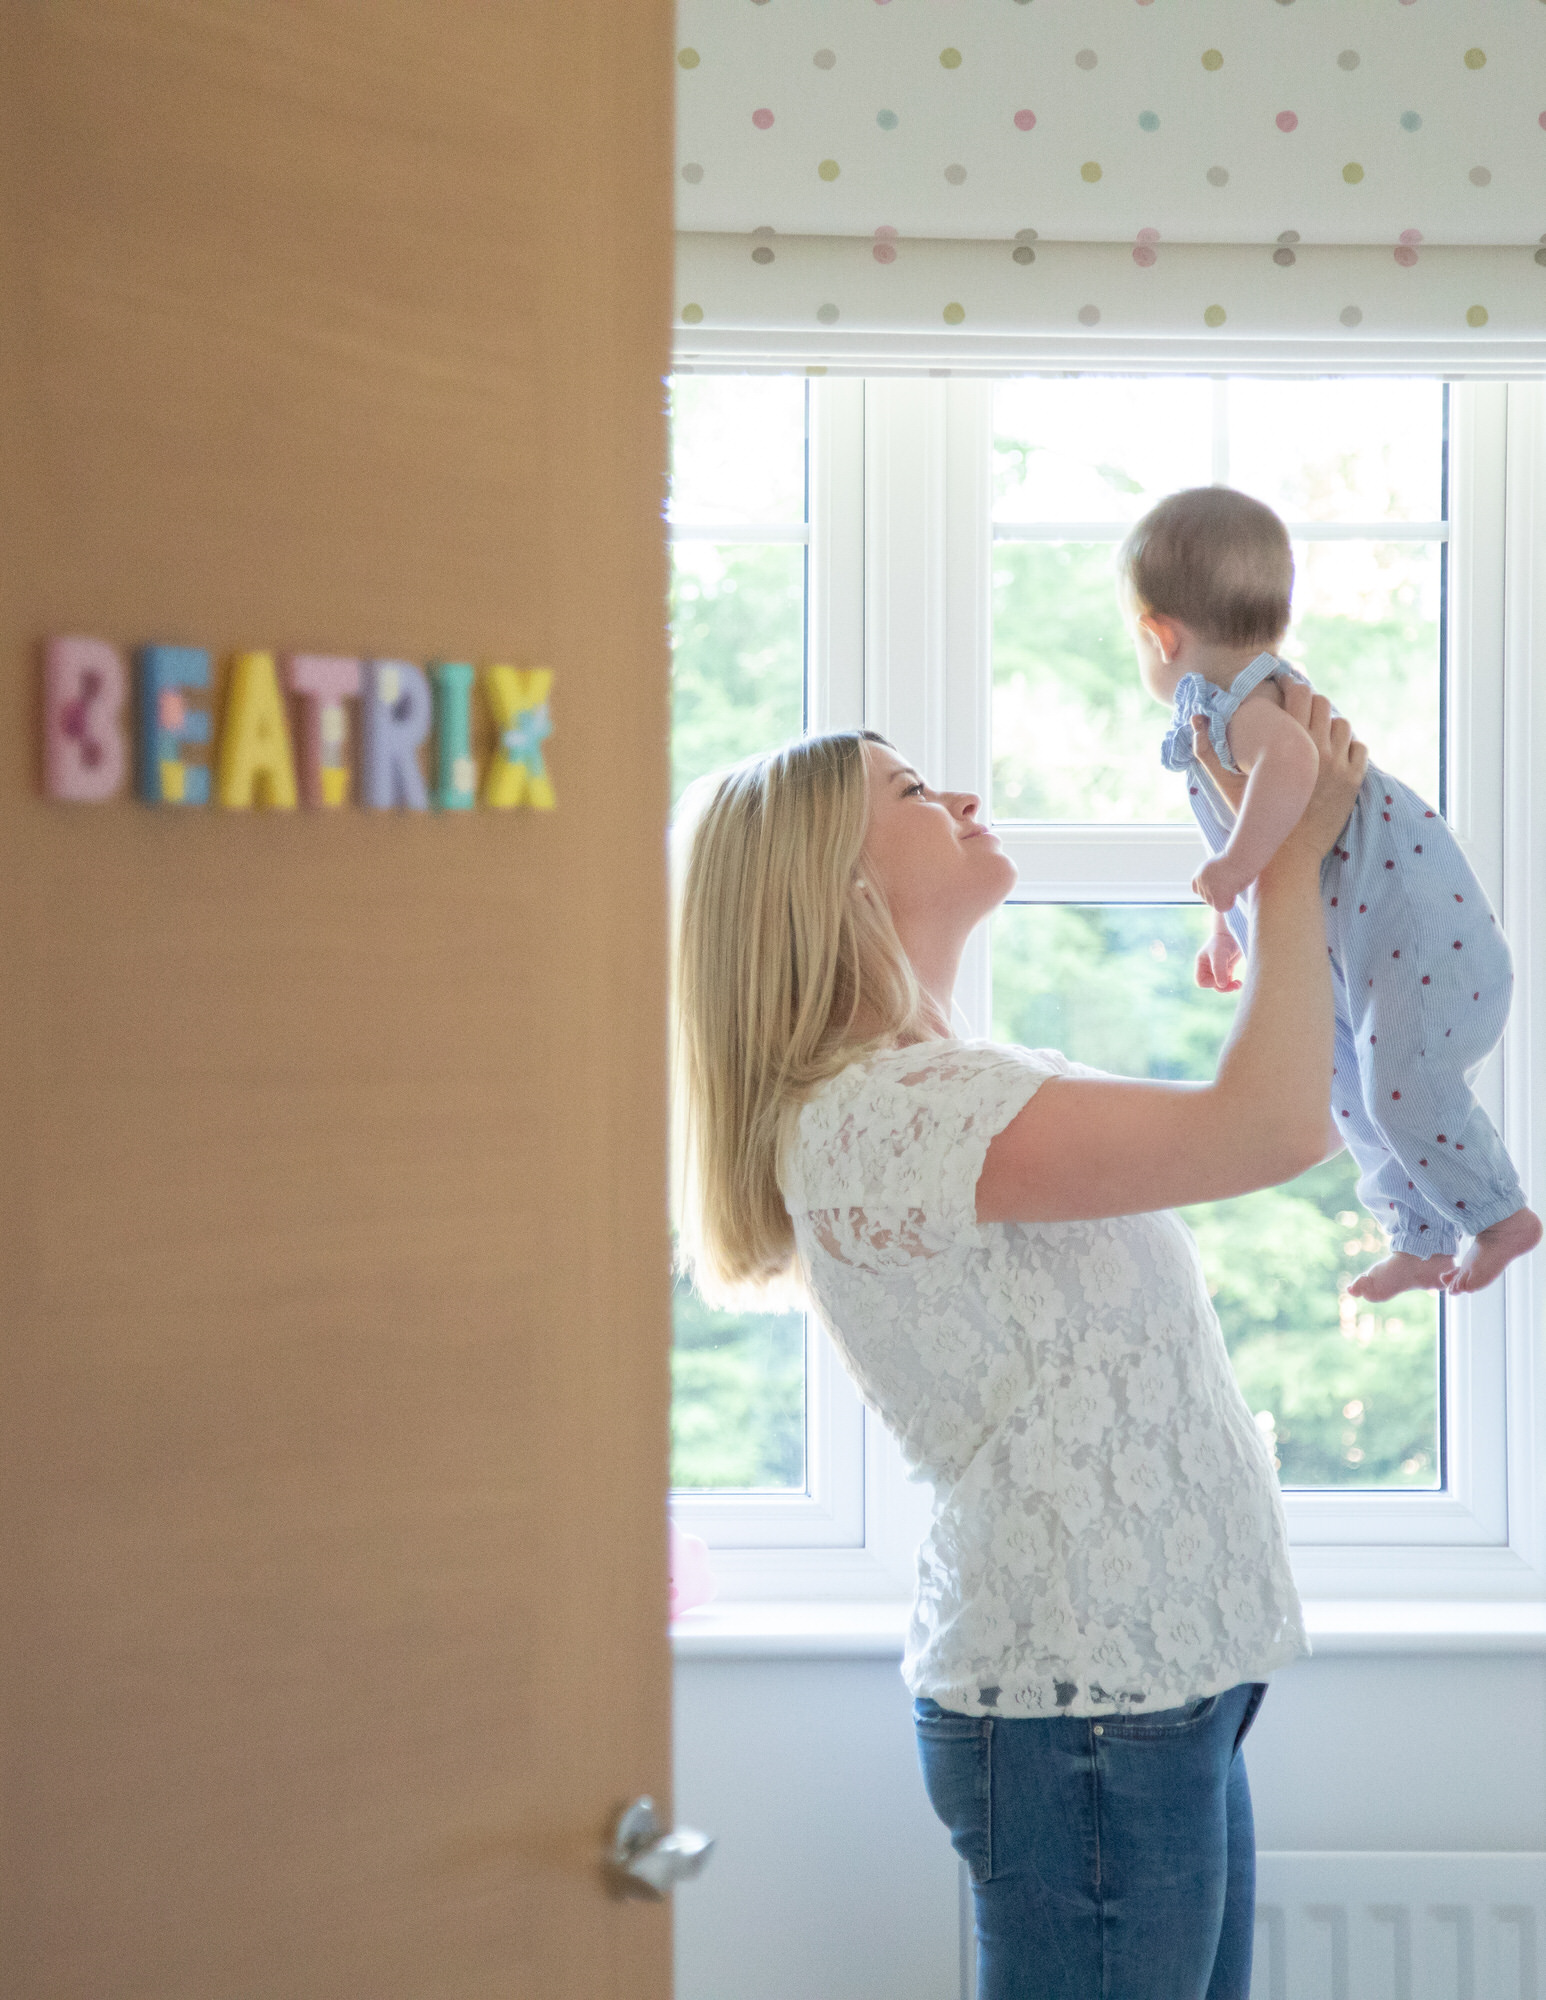 mother holding baby during photo shoot at home, photographed by Welwyn baby photographer